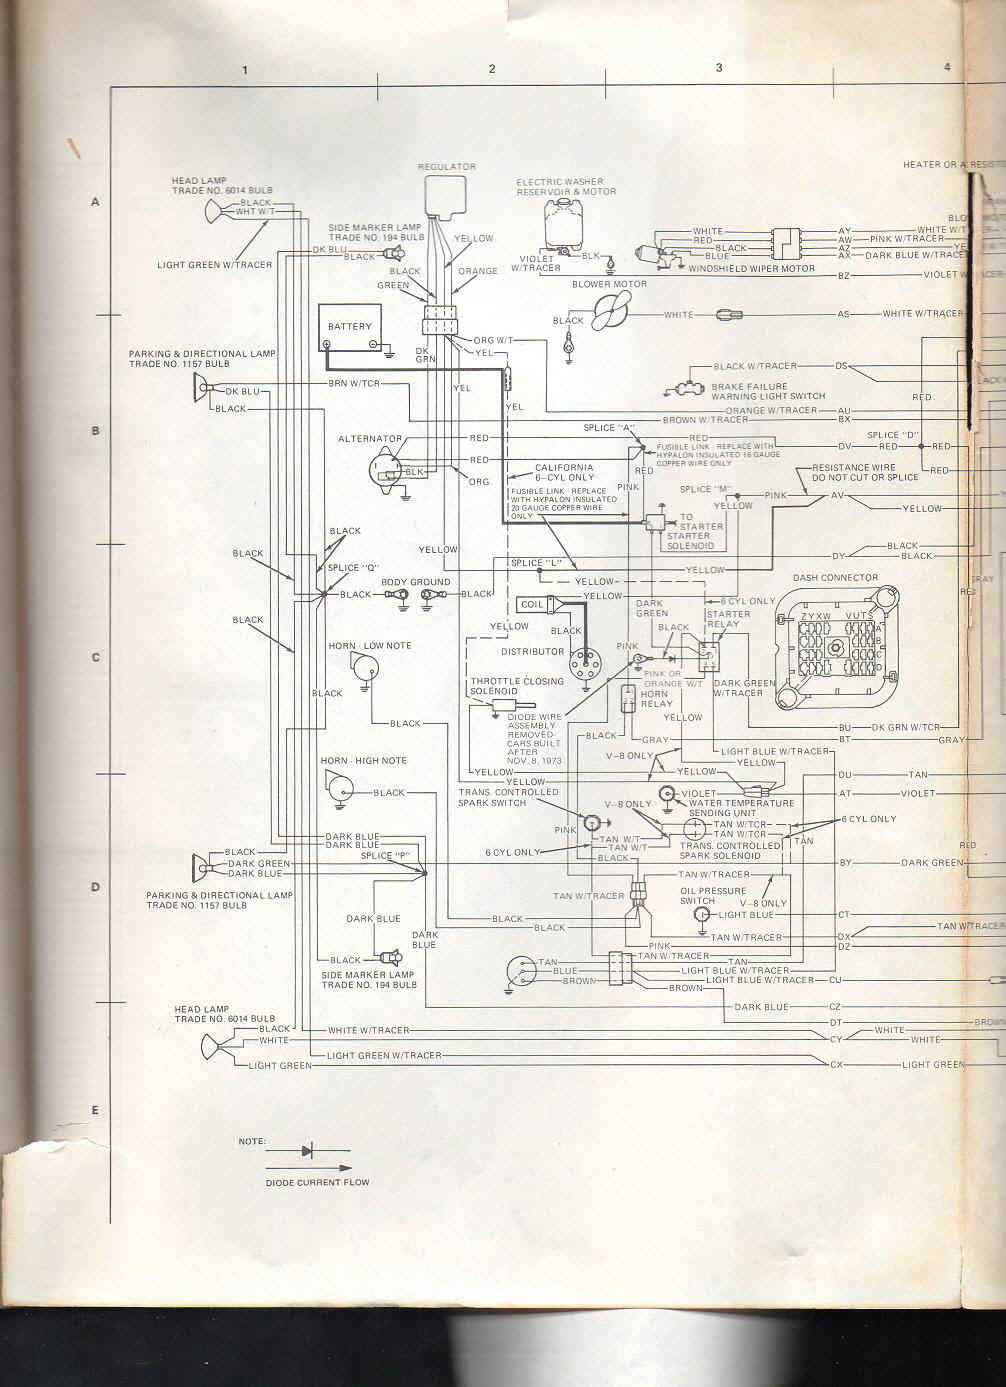 diagram] 1967 amc rebel wiring diagram full version hd quality wiring  diagram - scenediagrams.deli-multiservices.fr  scenediagrams.deli-multiservices.fr